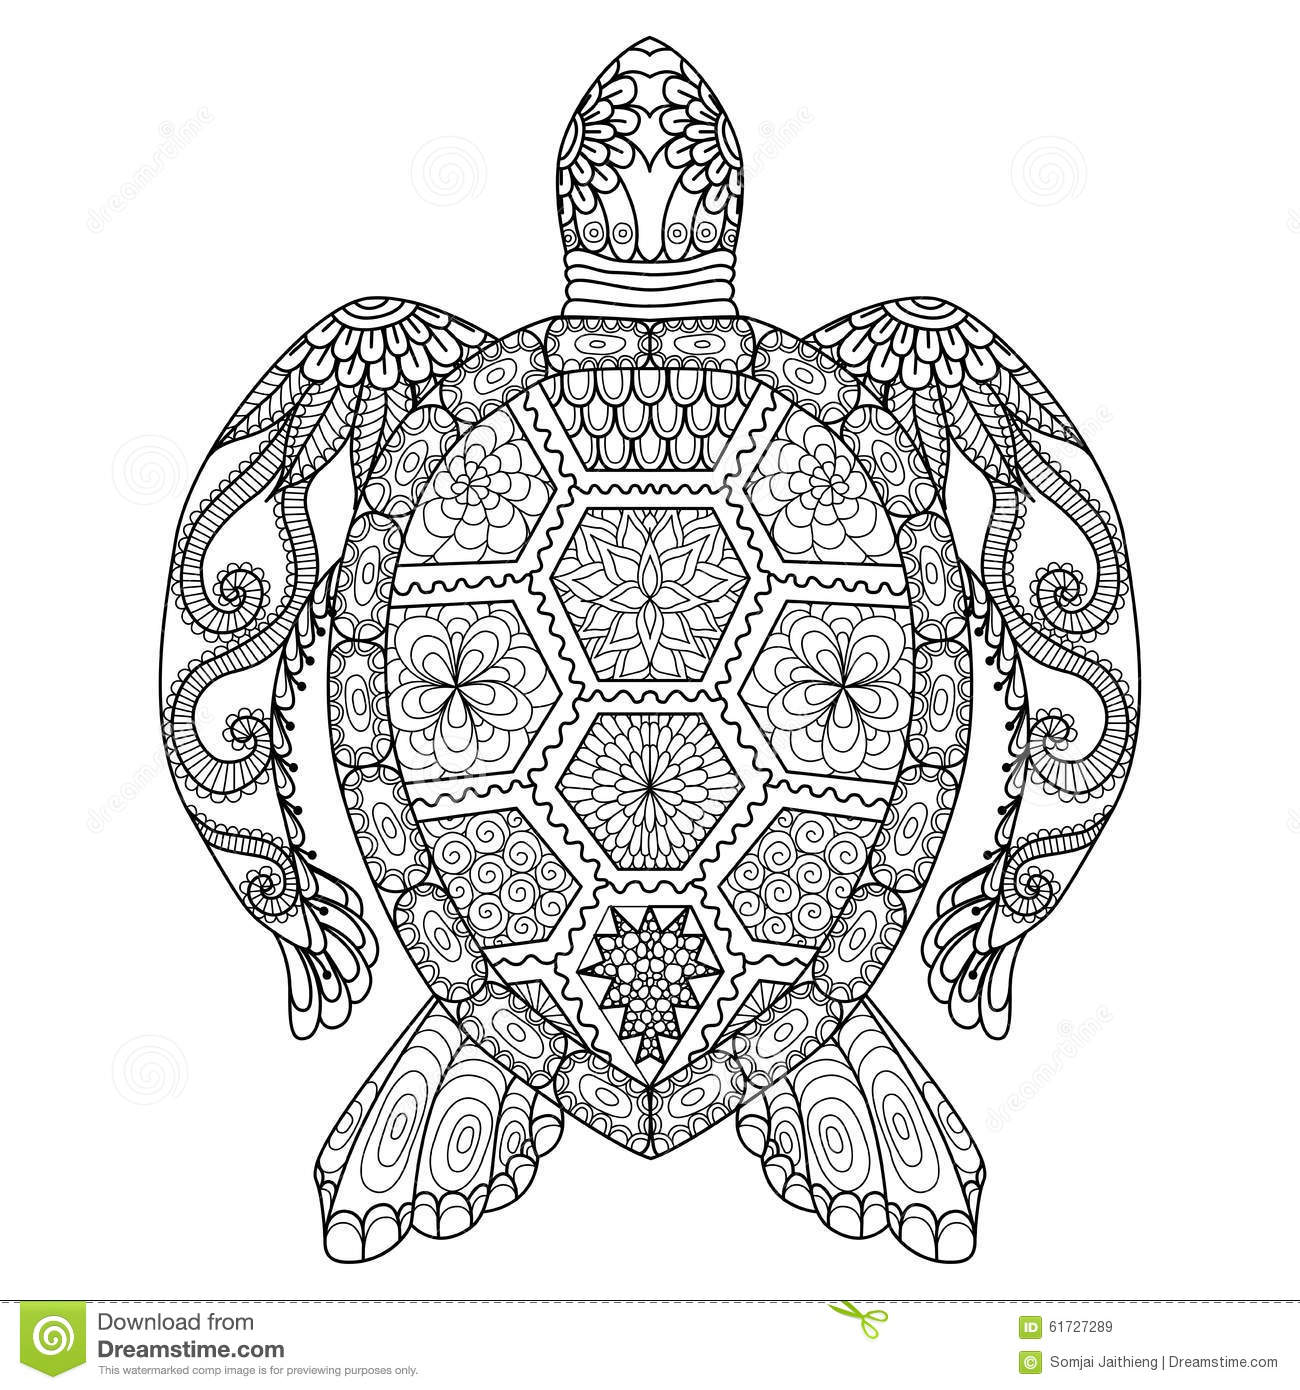 zentangle hummingbird coloring pages coloring pages. Black Bedroom Furniture Sets. Home Design Ideas